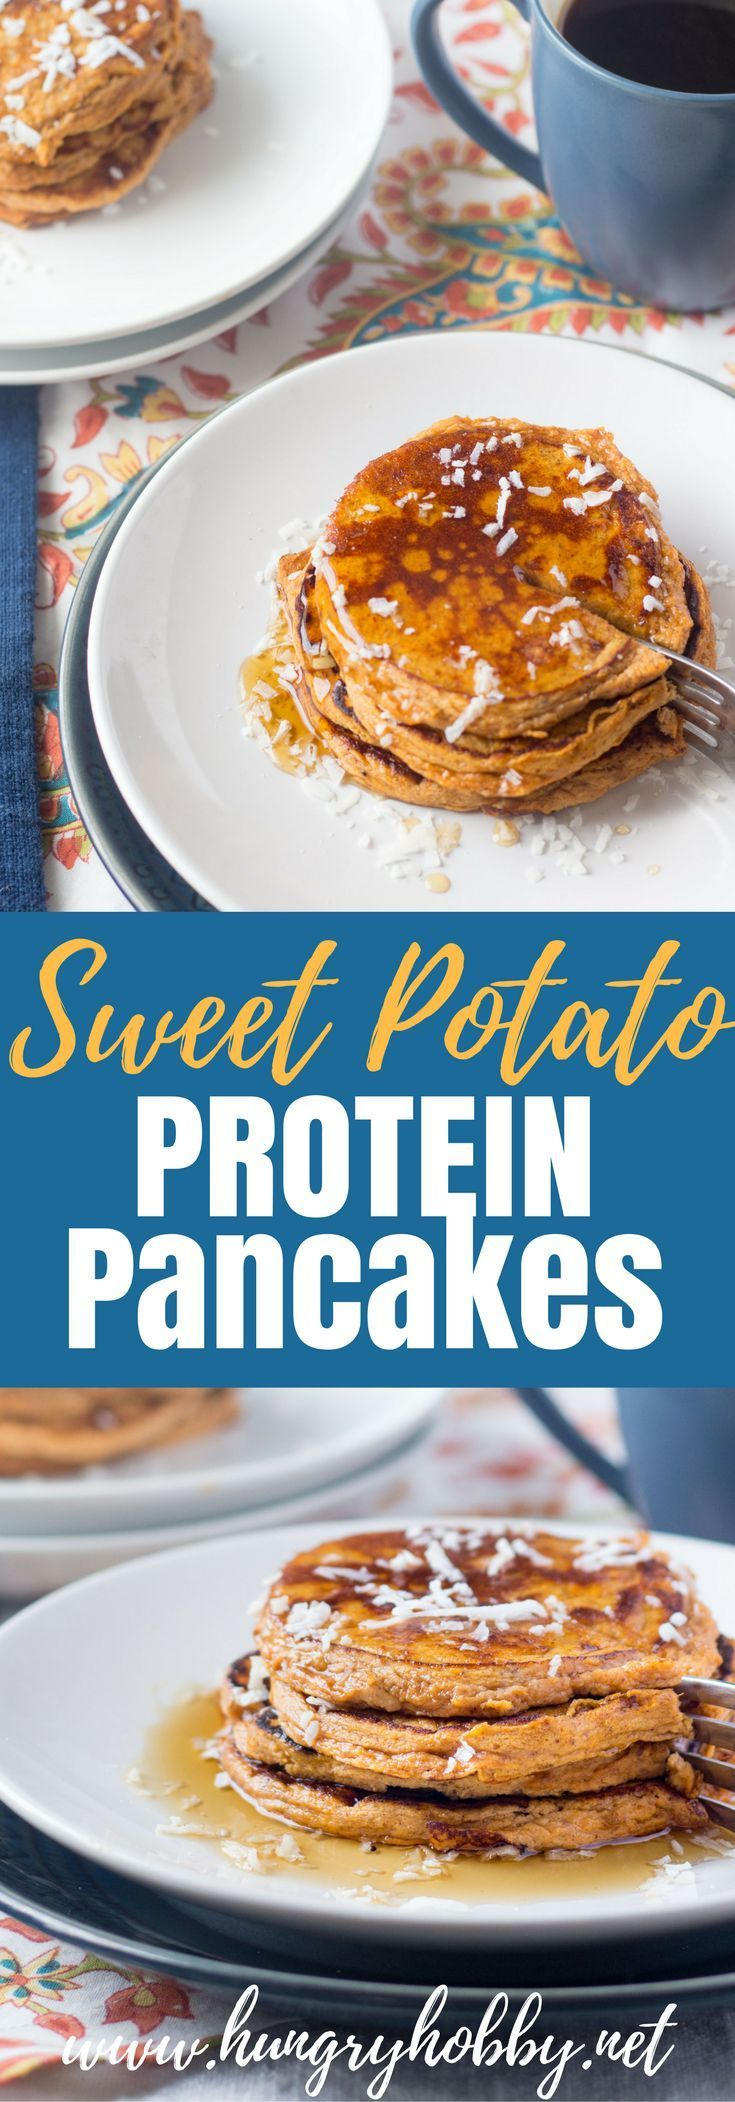 Sweet Potato Protein Pancakes For all the sweet potato lovers out there these Sweet Potato Protein Pancakes are AMAZING and gluten free! via @hungryhobby Potato Protein Pancakes For all the sweet potato lovers out there these Sweet Potato Protein Pancakes are AMAZING and gluten free!  via @hungryhobbyFor all the sweet potato lovers out there these Sweet Potato Protein Pancakes are AMAZING and gluten free!  via @hungryhobby